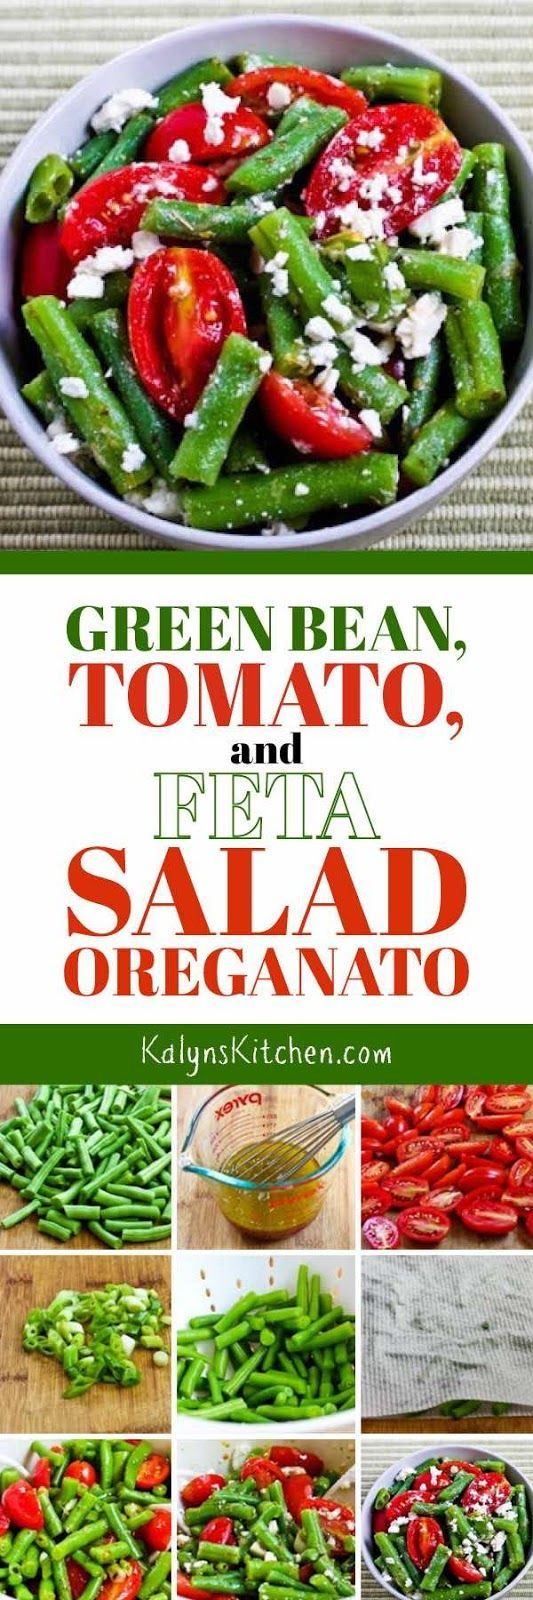 Green Bean, Tomato, and Feta Salad Oreganato has all my favorite flavors for summer! And this delicious salad with Greek flavors is low-carb, low-glycemic, gluten-free, meatless, and South Beach Diet friendly. [found on KalynsKitchen.com]